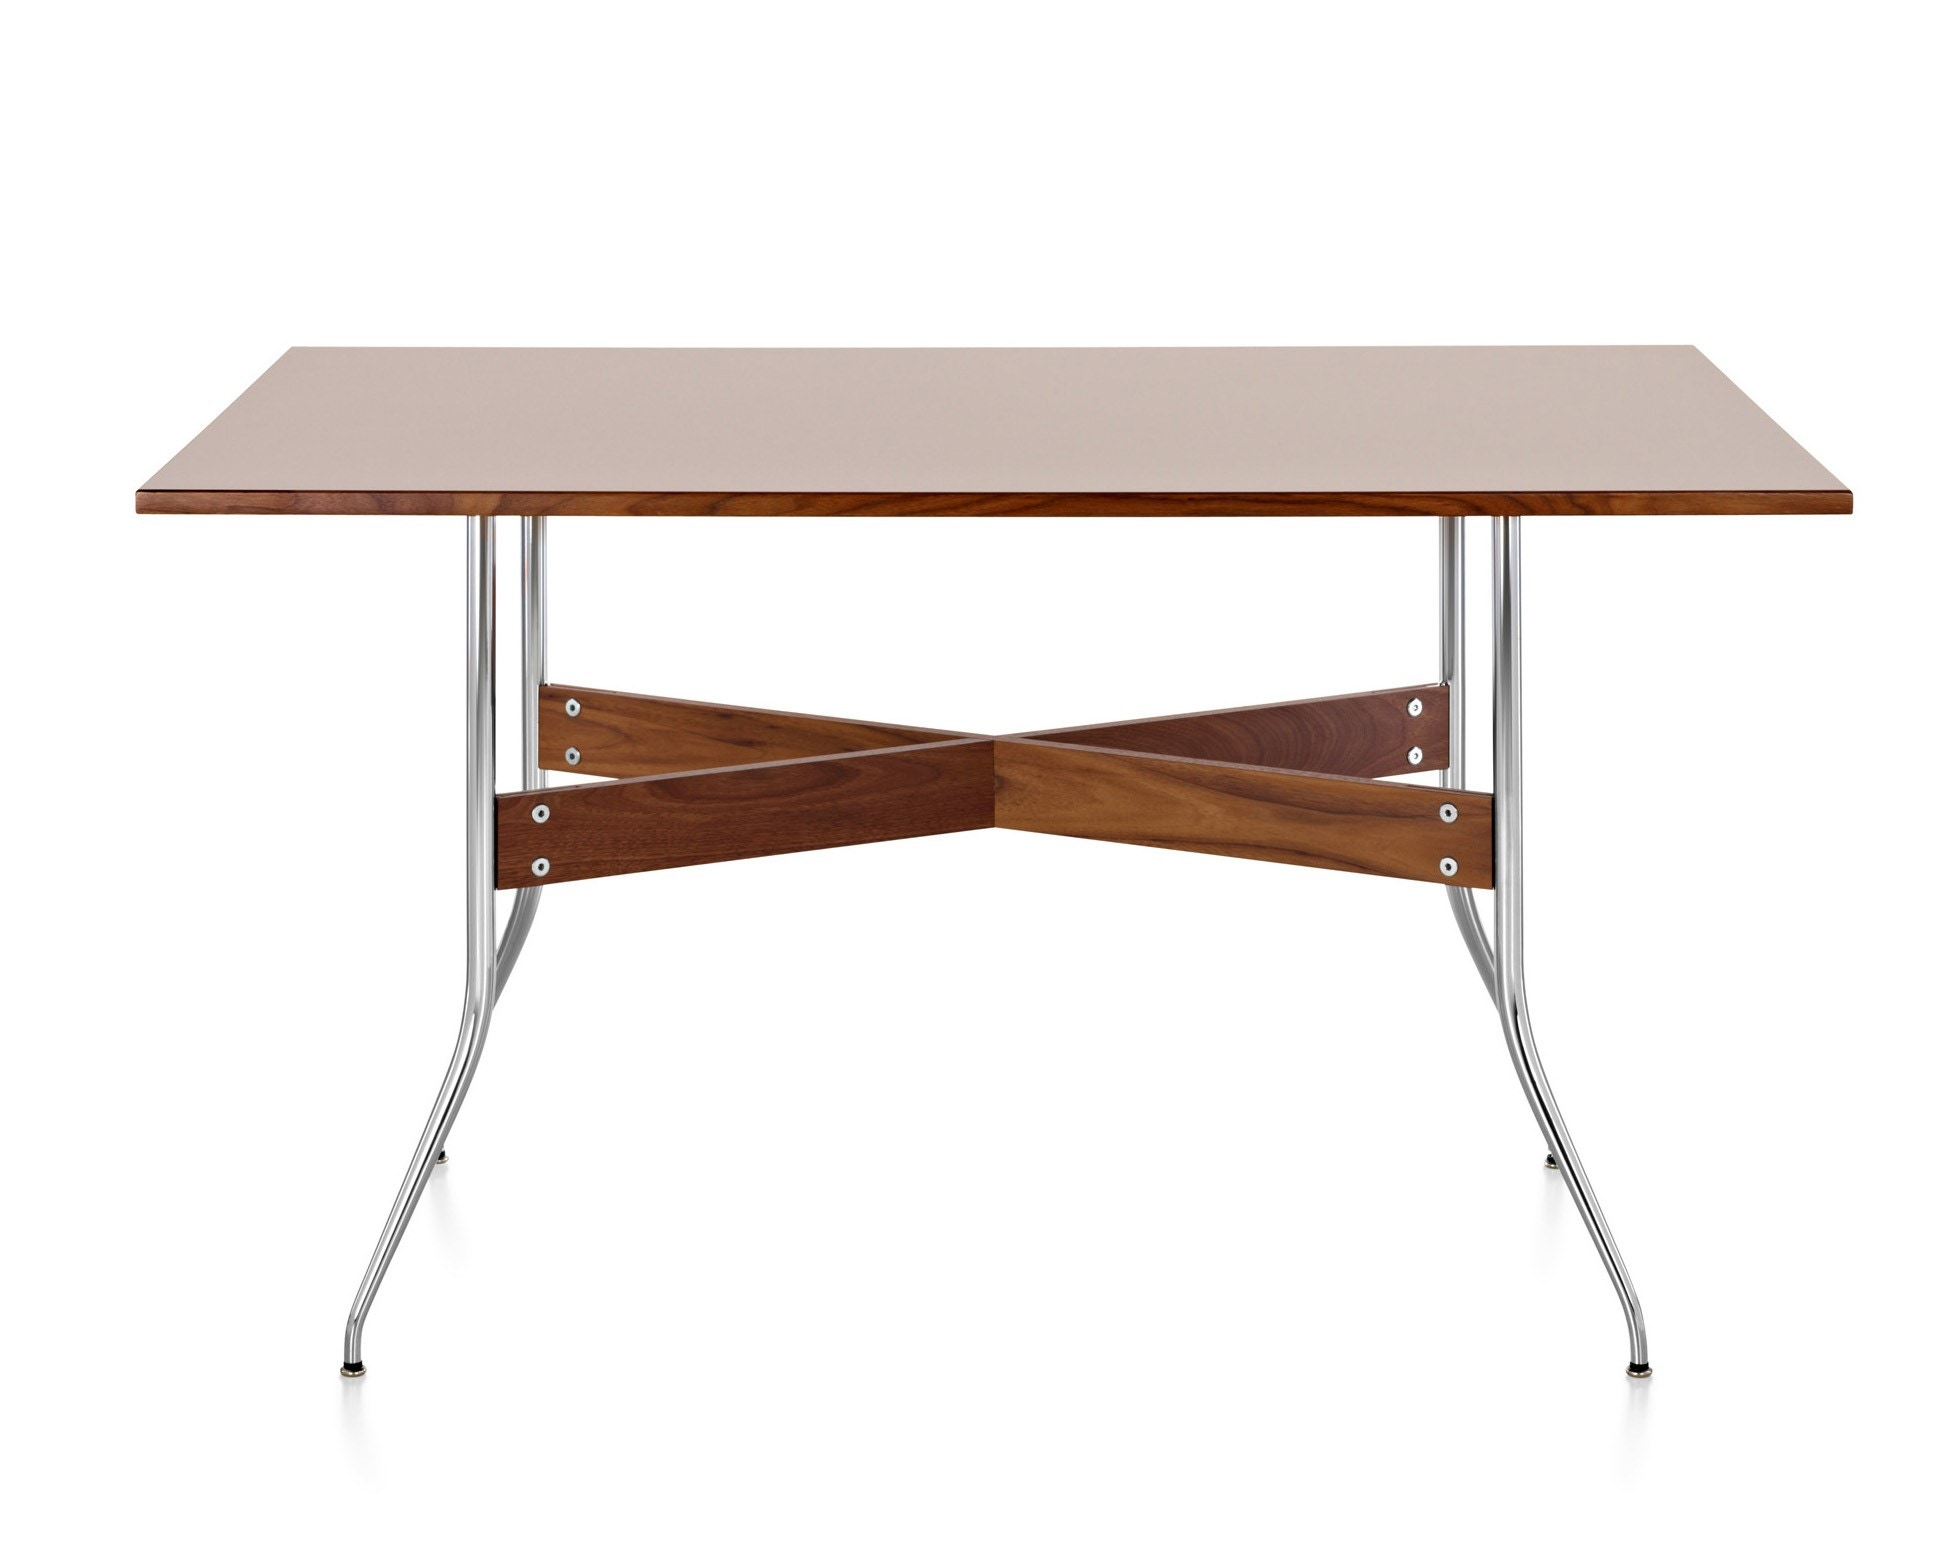 Herman miller nelson swag leg dining table rectangular for Nelson swag leg table